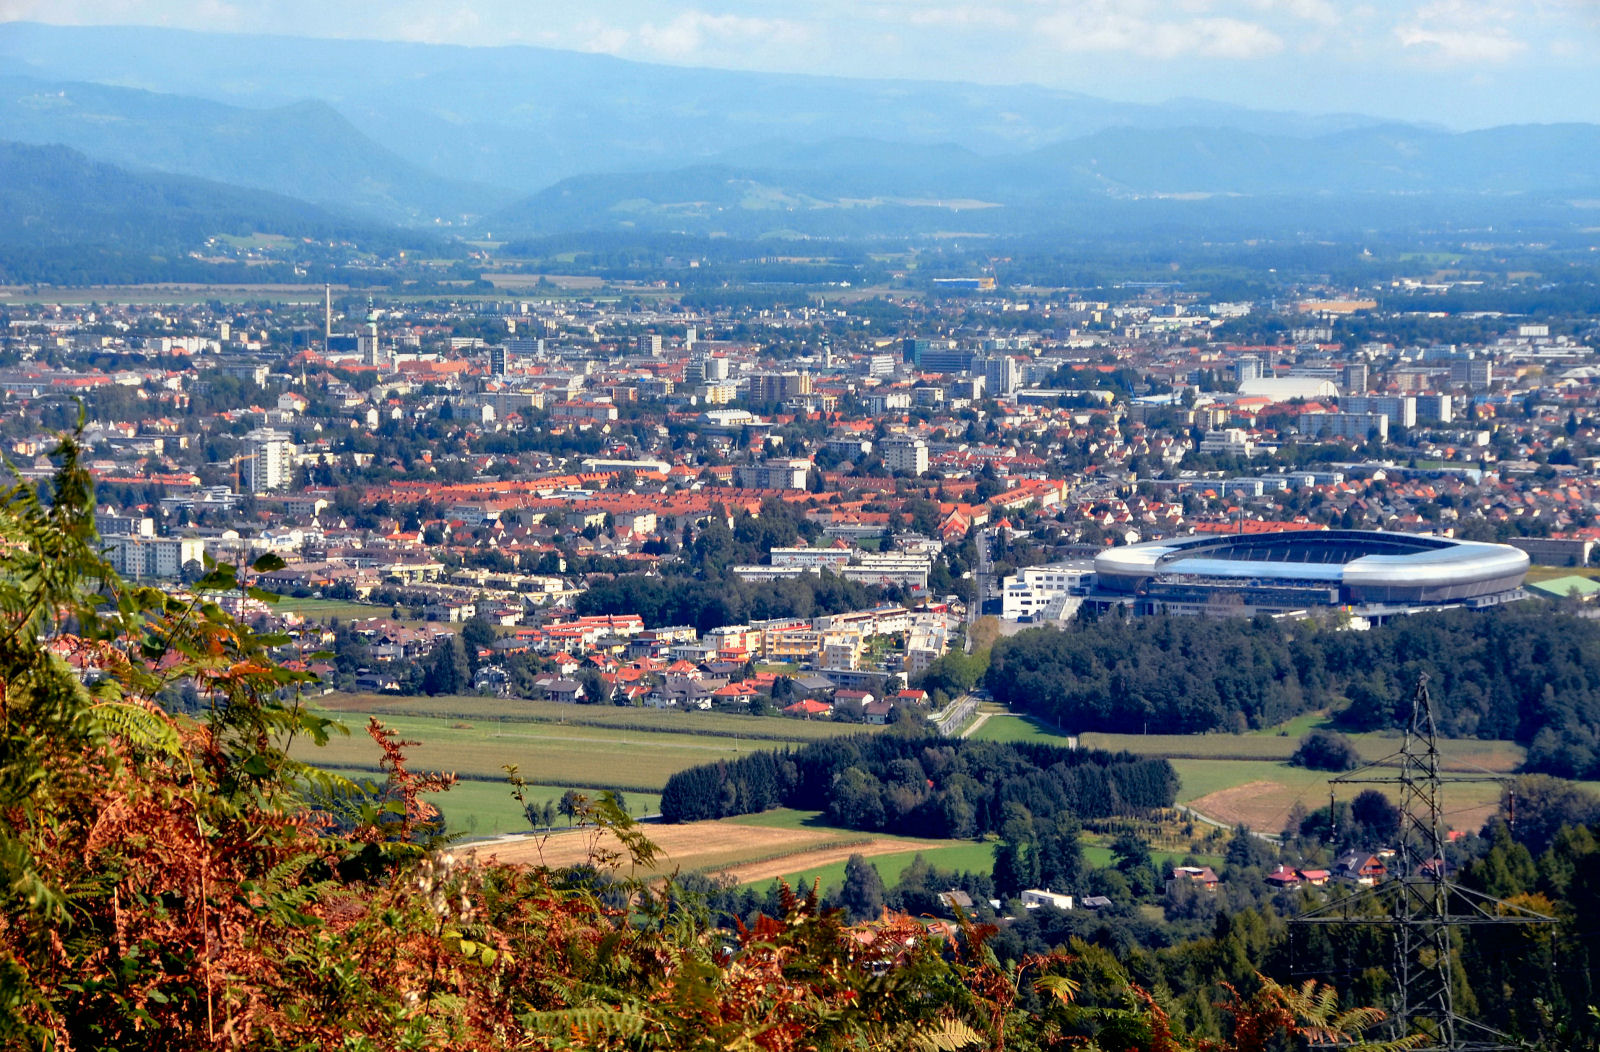 View from the flank of the Schrottkogel at the city of Klagenfurt, Carinthia, Austria